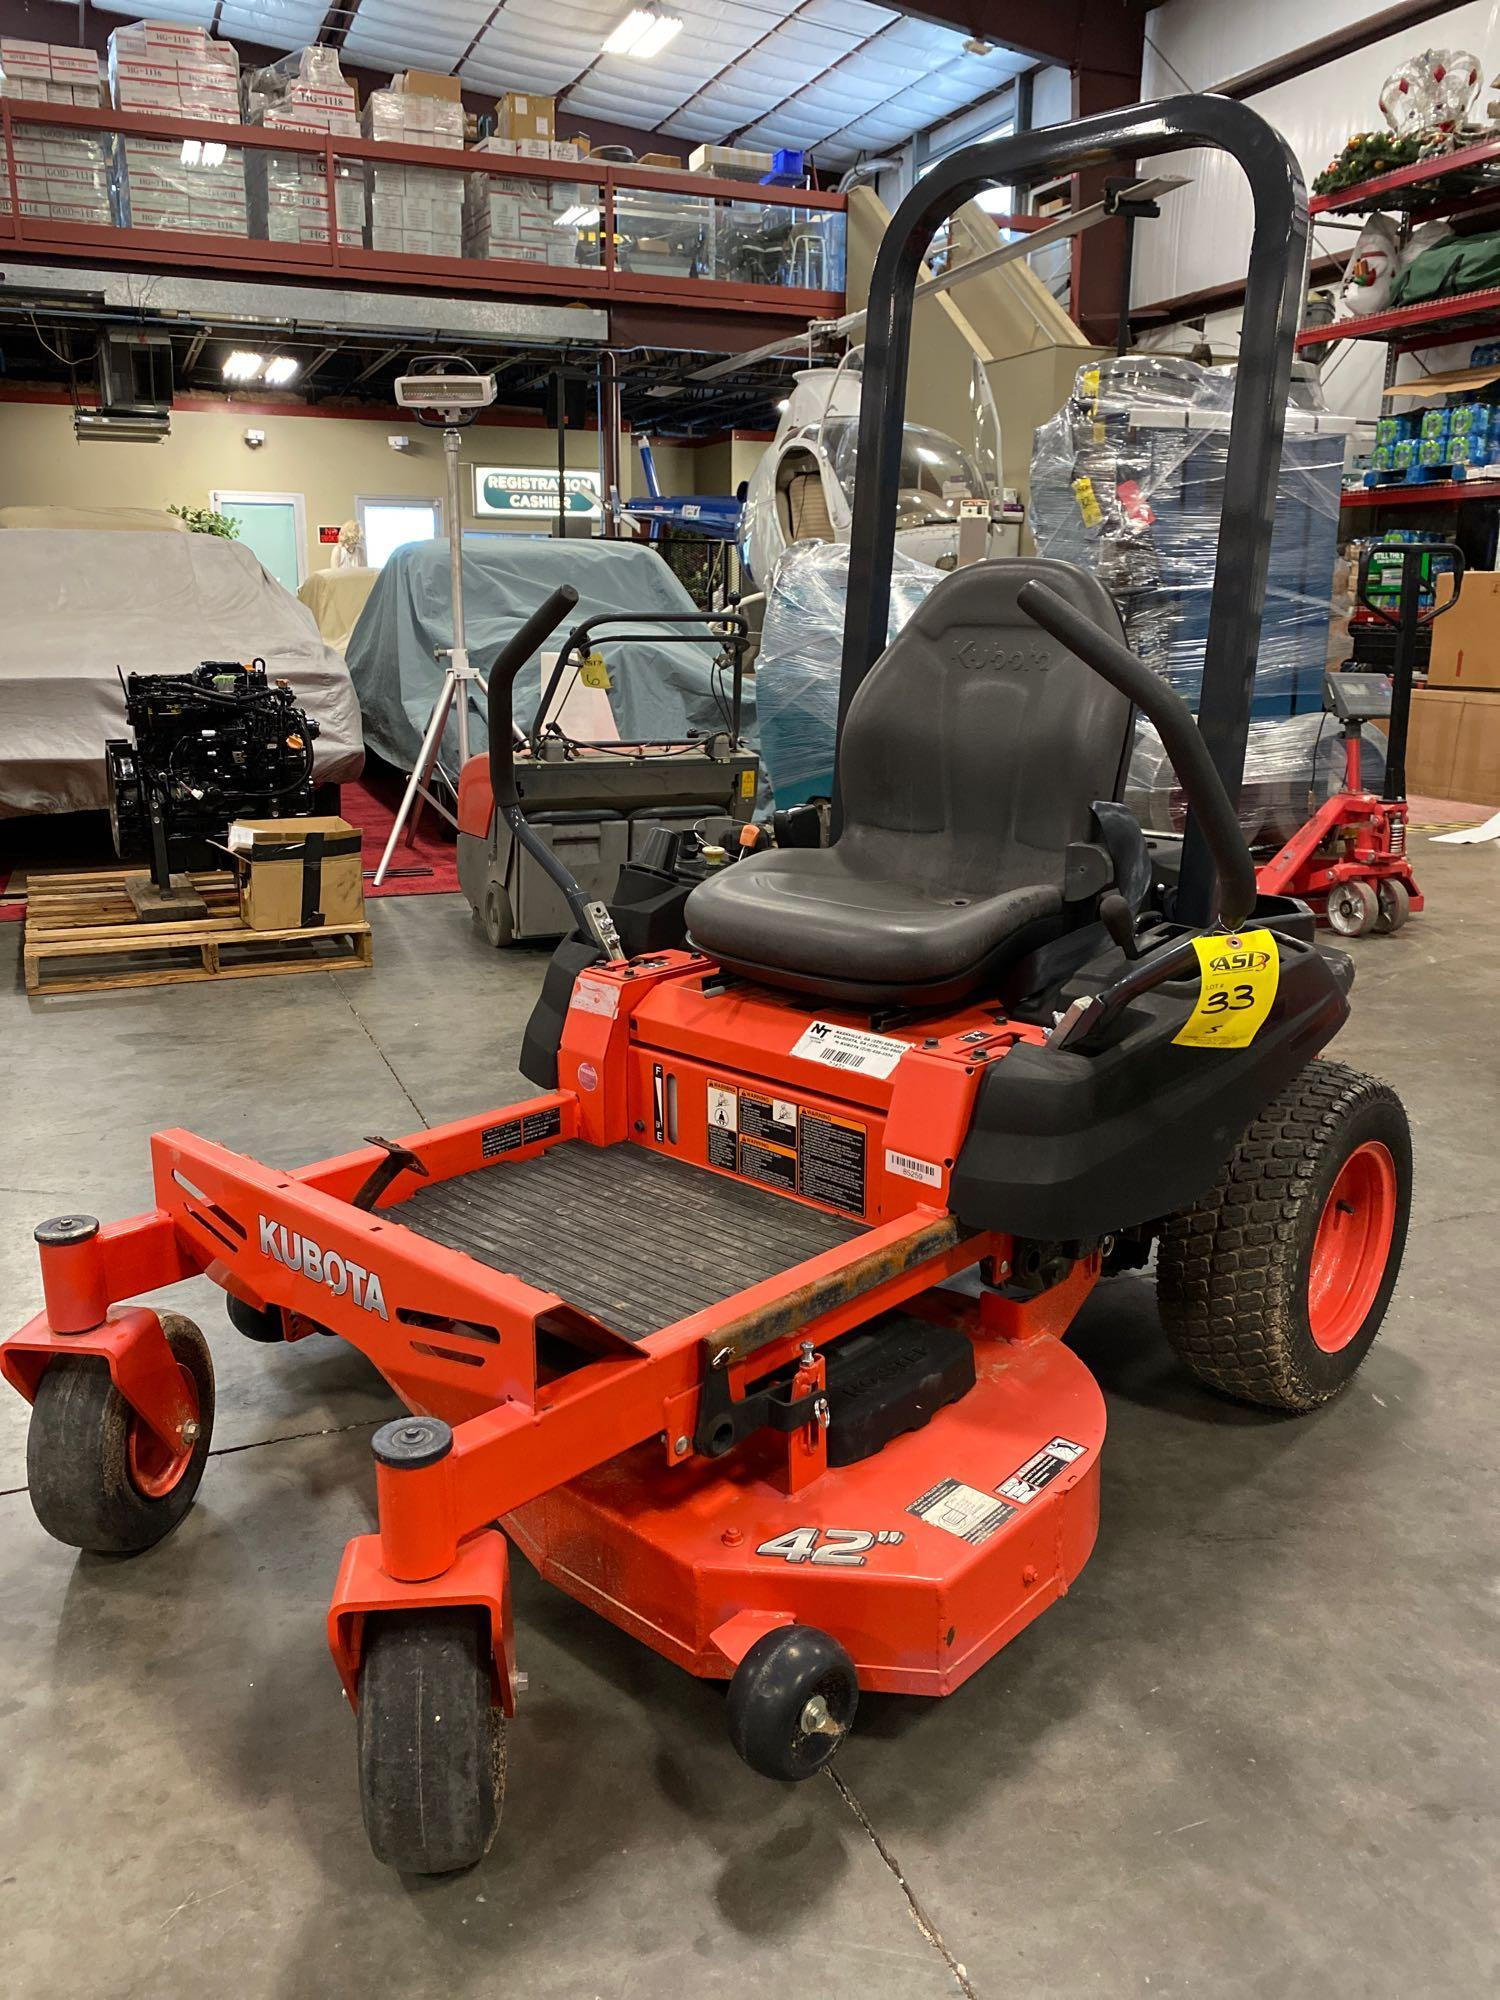 """2016 KUBOTA Z122RKW 42"""" RIDE ON MOWER, 3.9 HOURS SHOWING, RUNS AND OPERATES"""